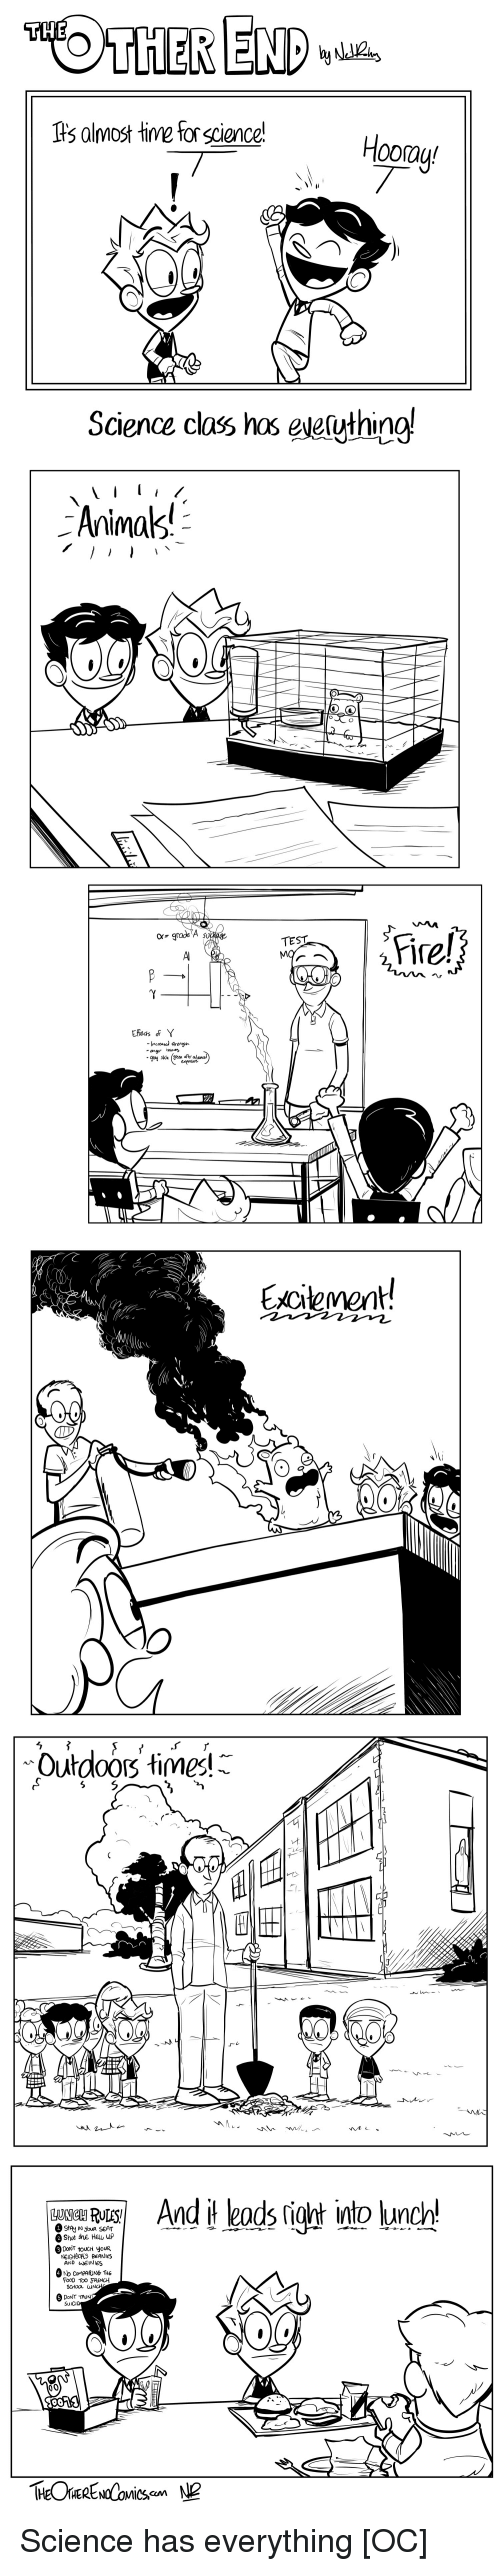 Fire, Science, and Comics: THE  s almost tine for sciencel  Hoorau  Science clas has eseluthing!  Animak  Fire!  Excitement!  outdoorš timesに  user Rusl  Andit leads「igh into kunch! Science has everything [OC]